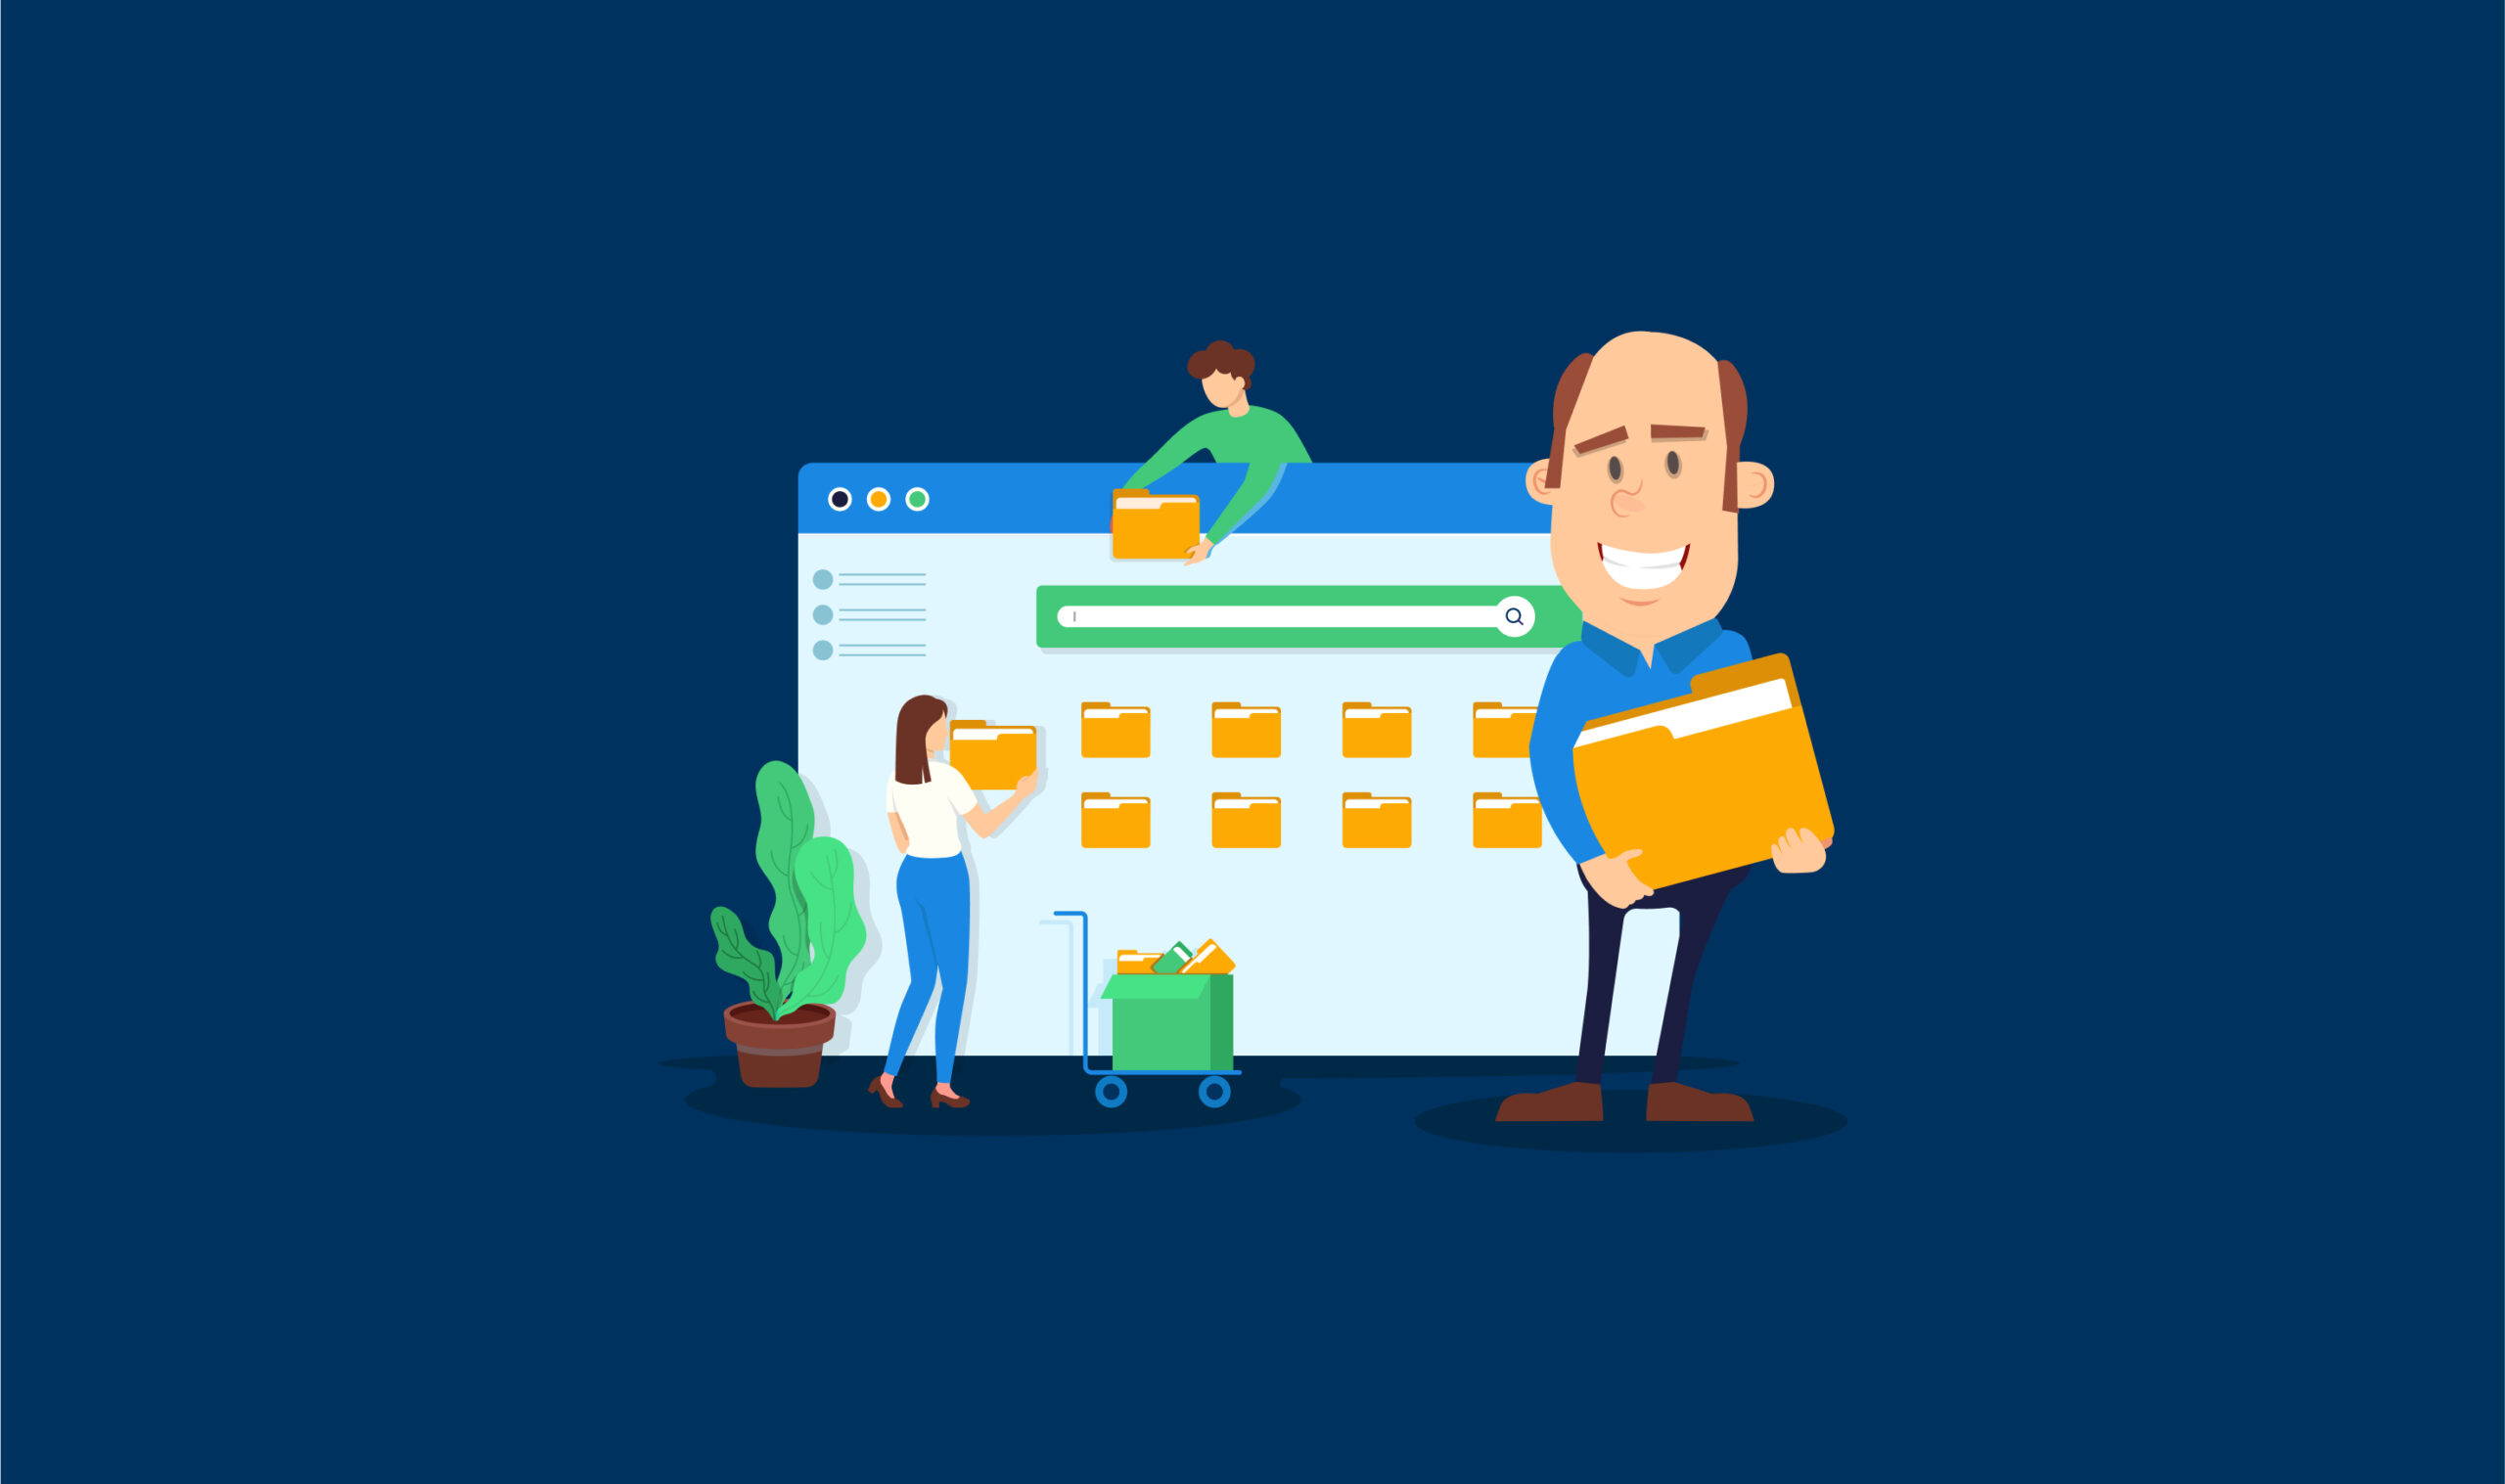 Updated Document Workflow: Organize Files & Folders in the Way It Works for Your Firm